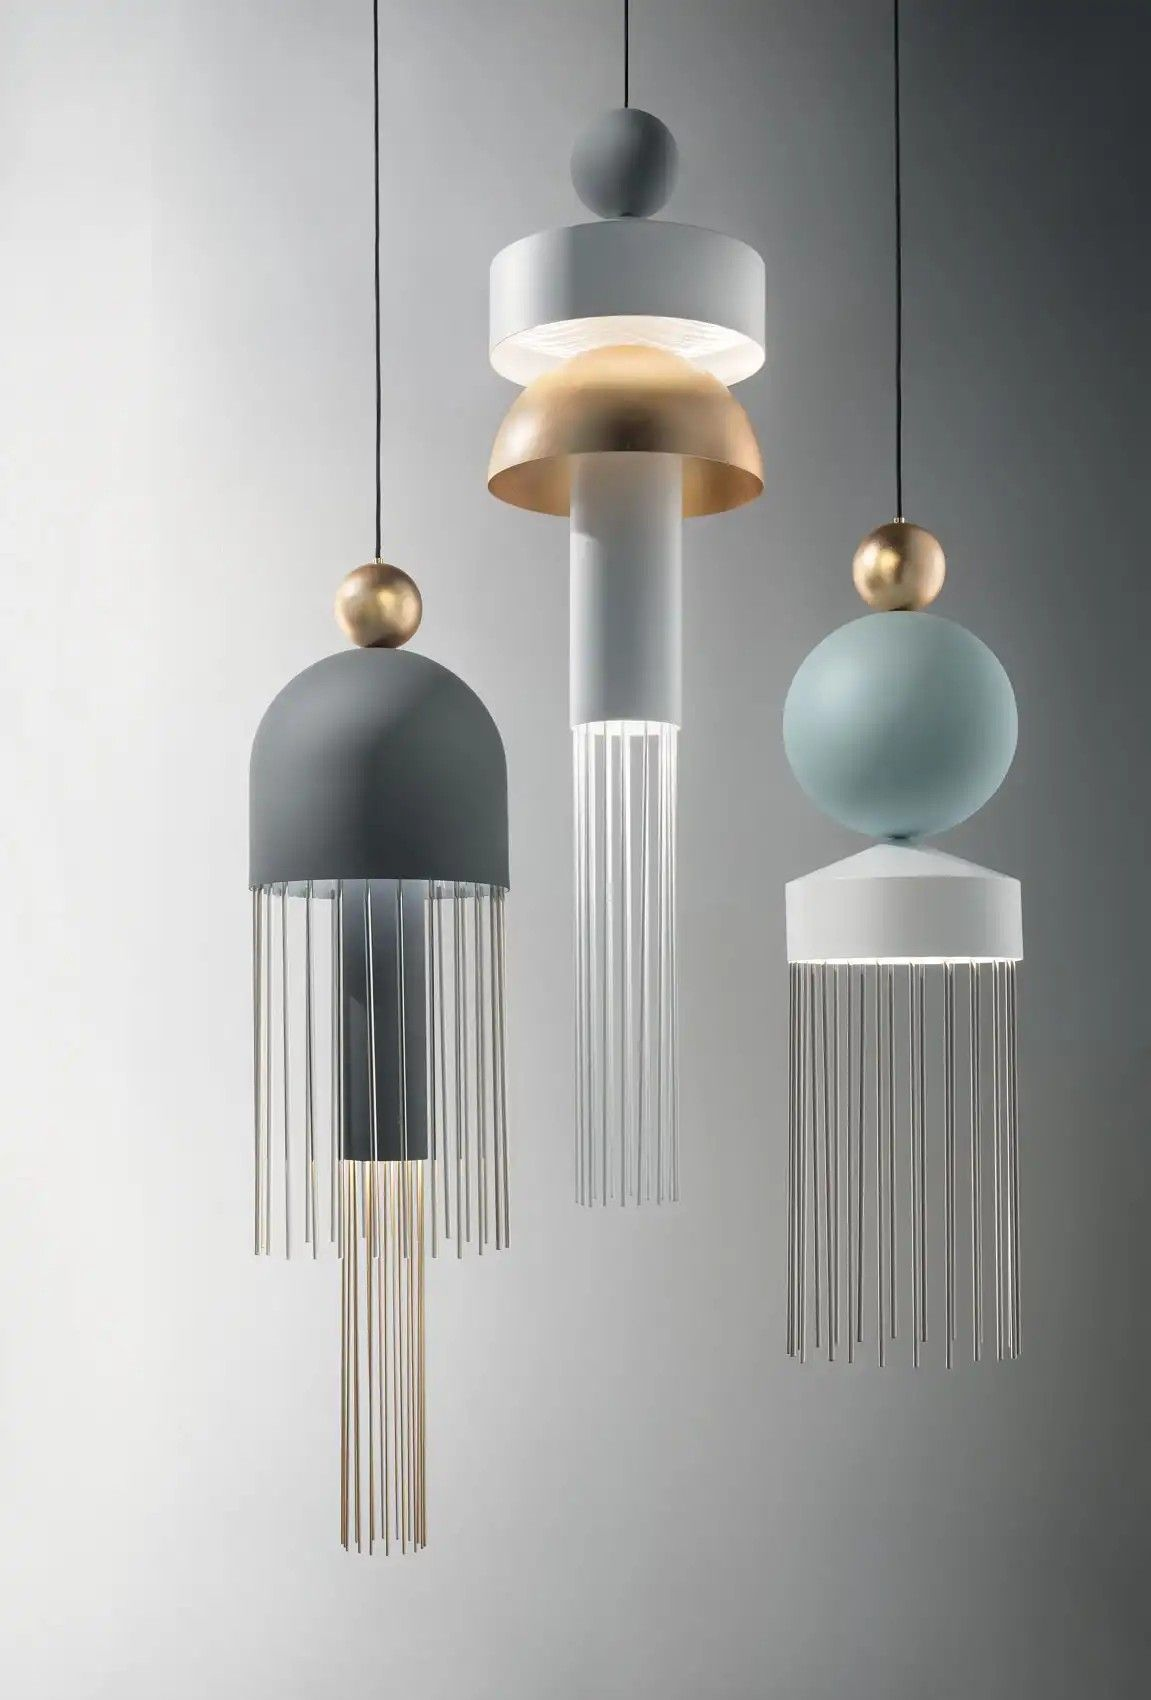 Statement Pendant Lighting With An Artistic Edge You Can Choose